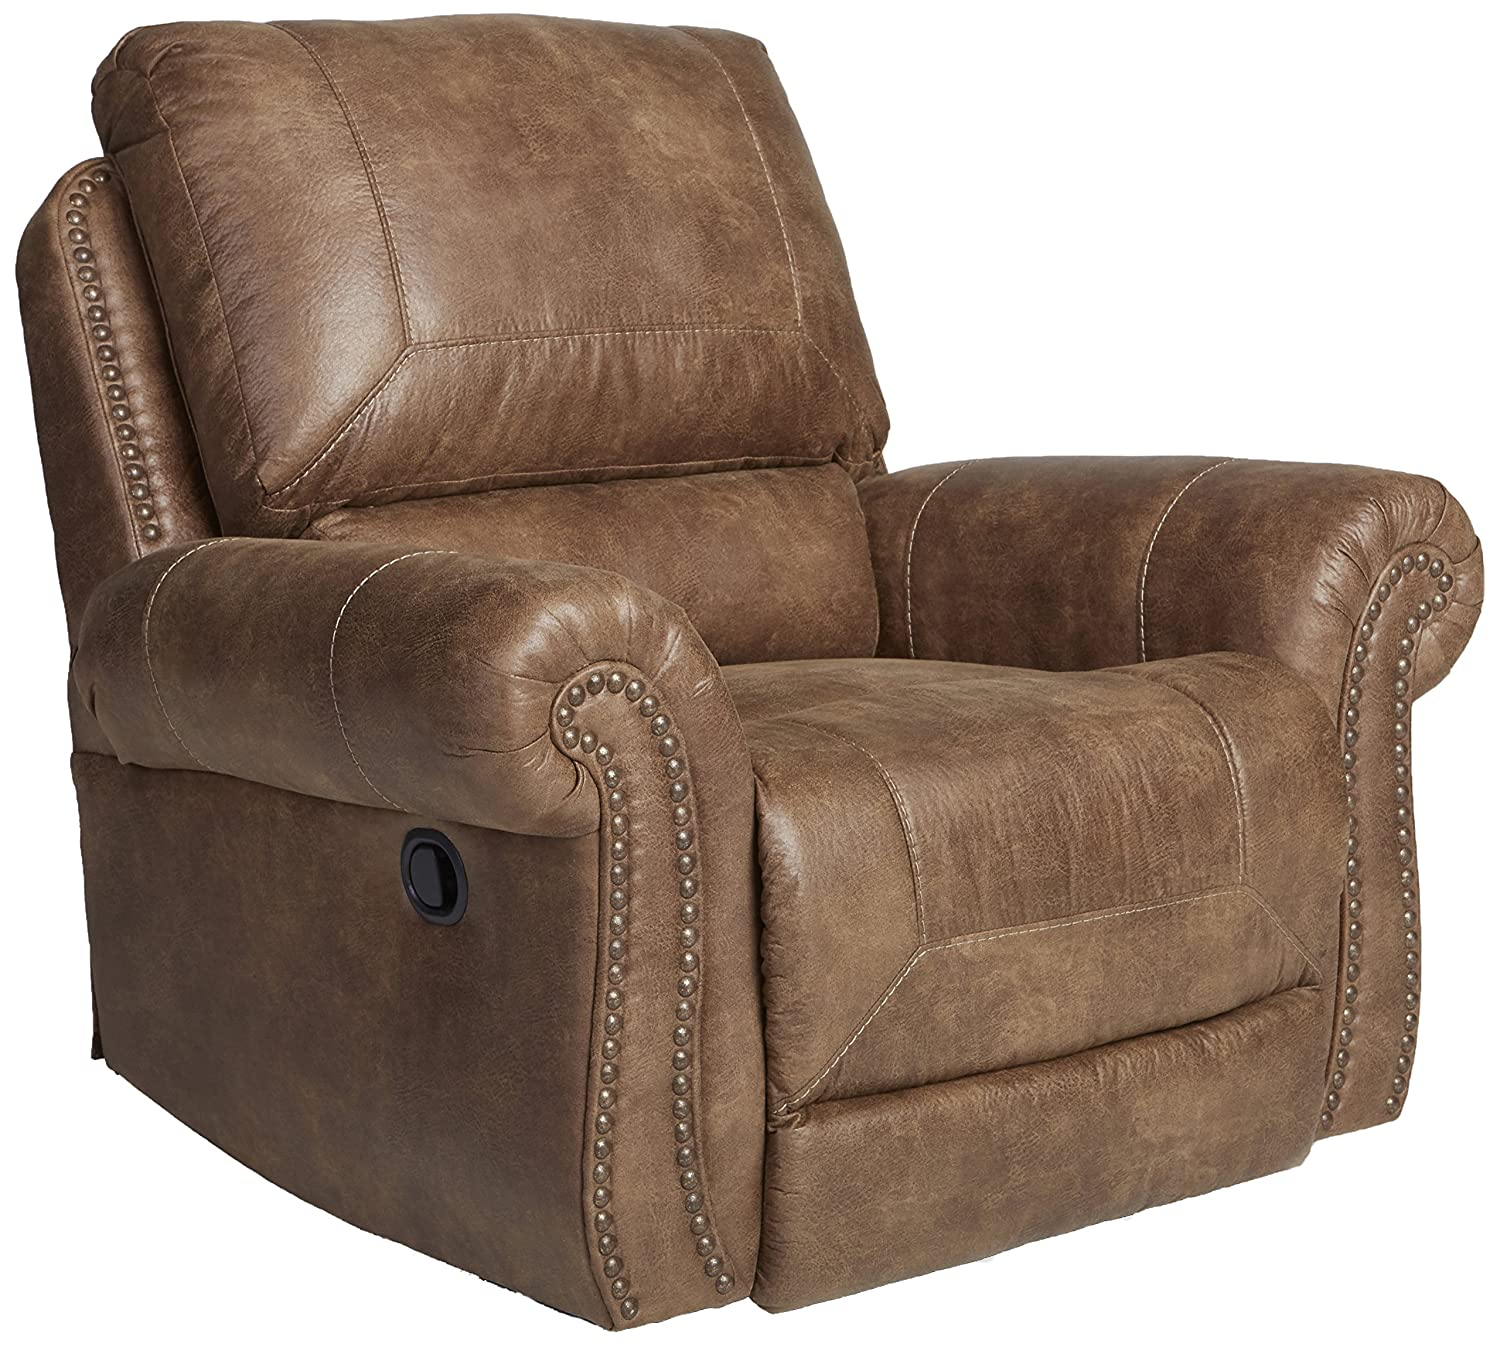 Ashley Furniture Signature Design Larkinhurst Rocker Recliner